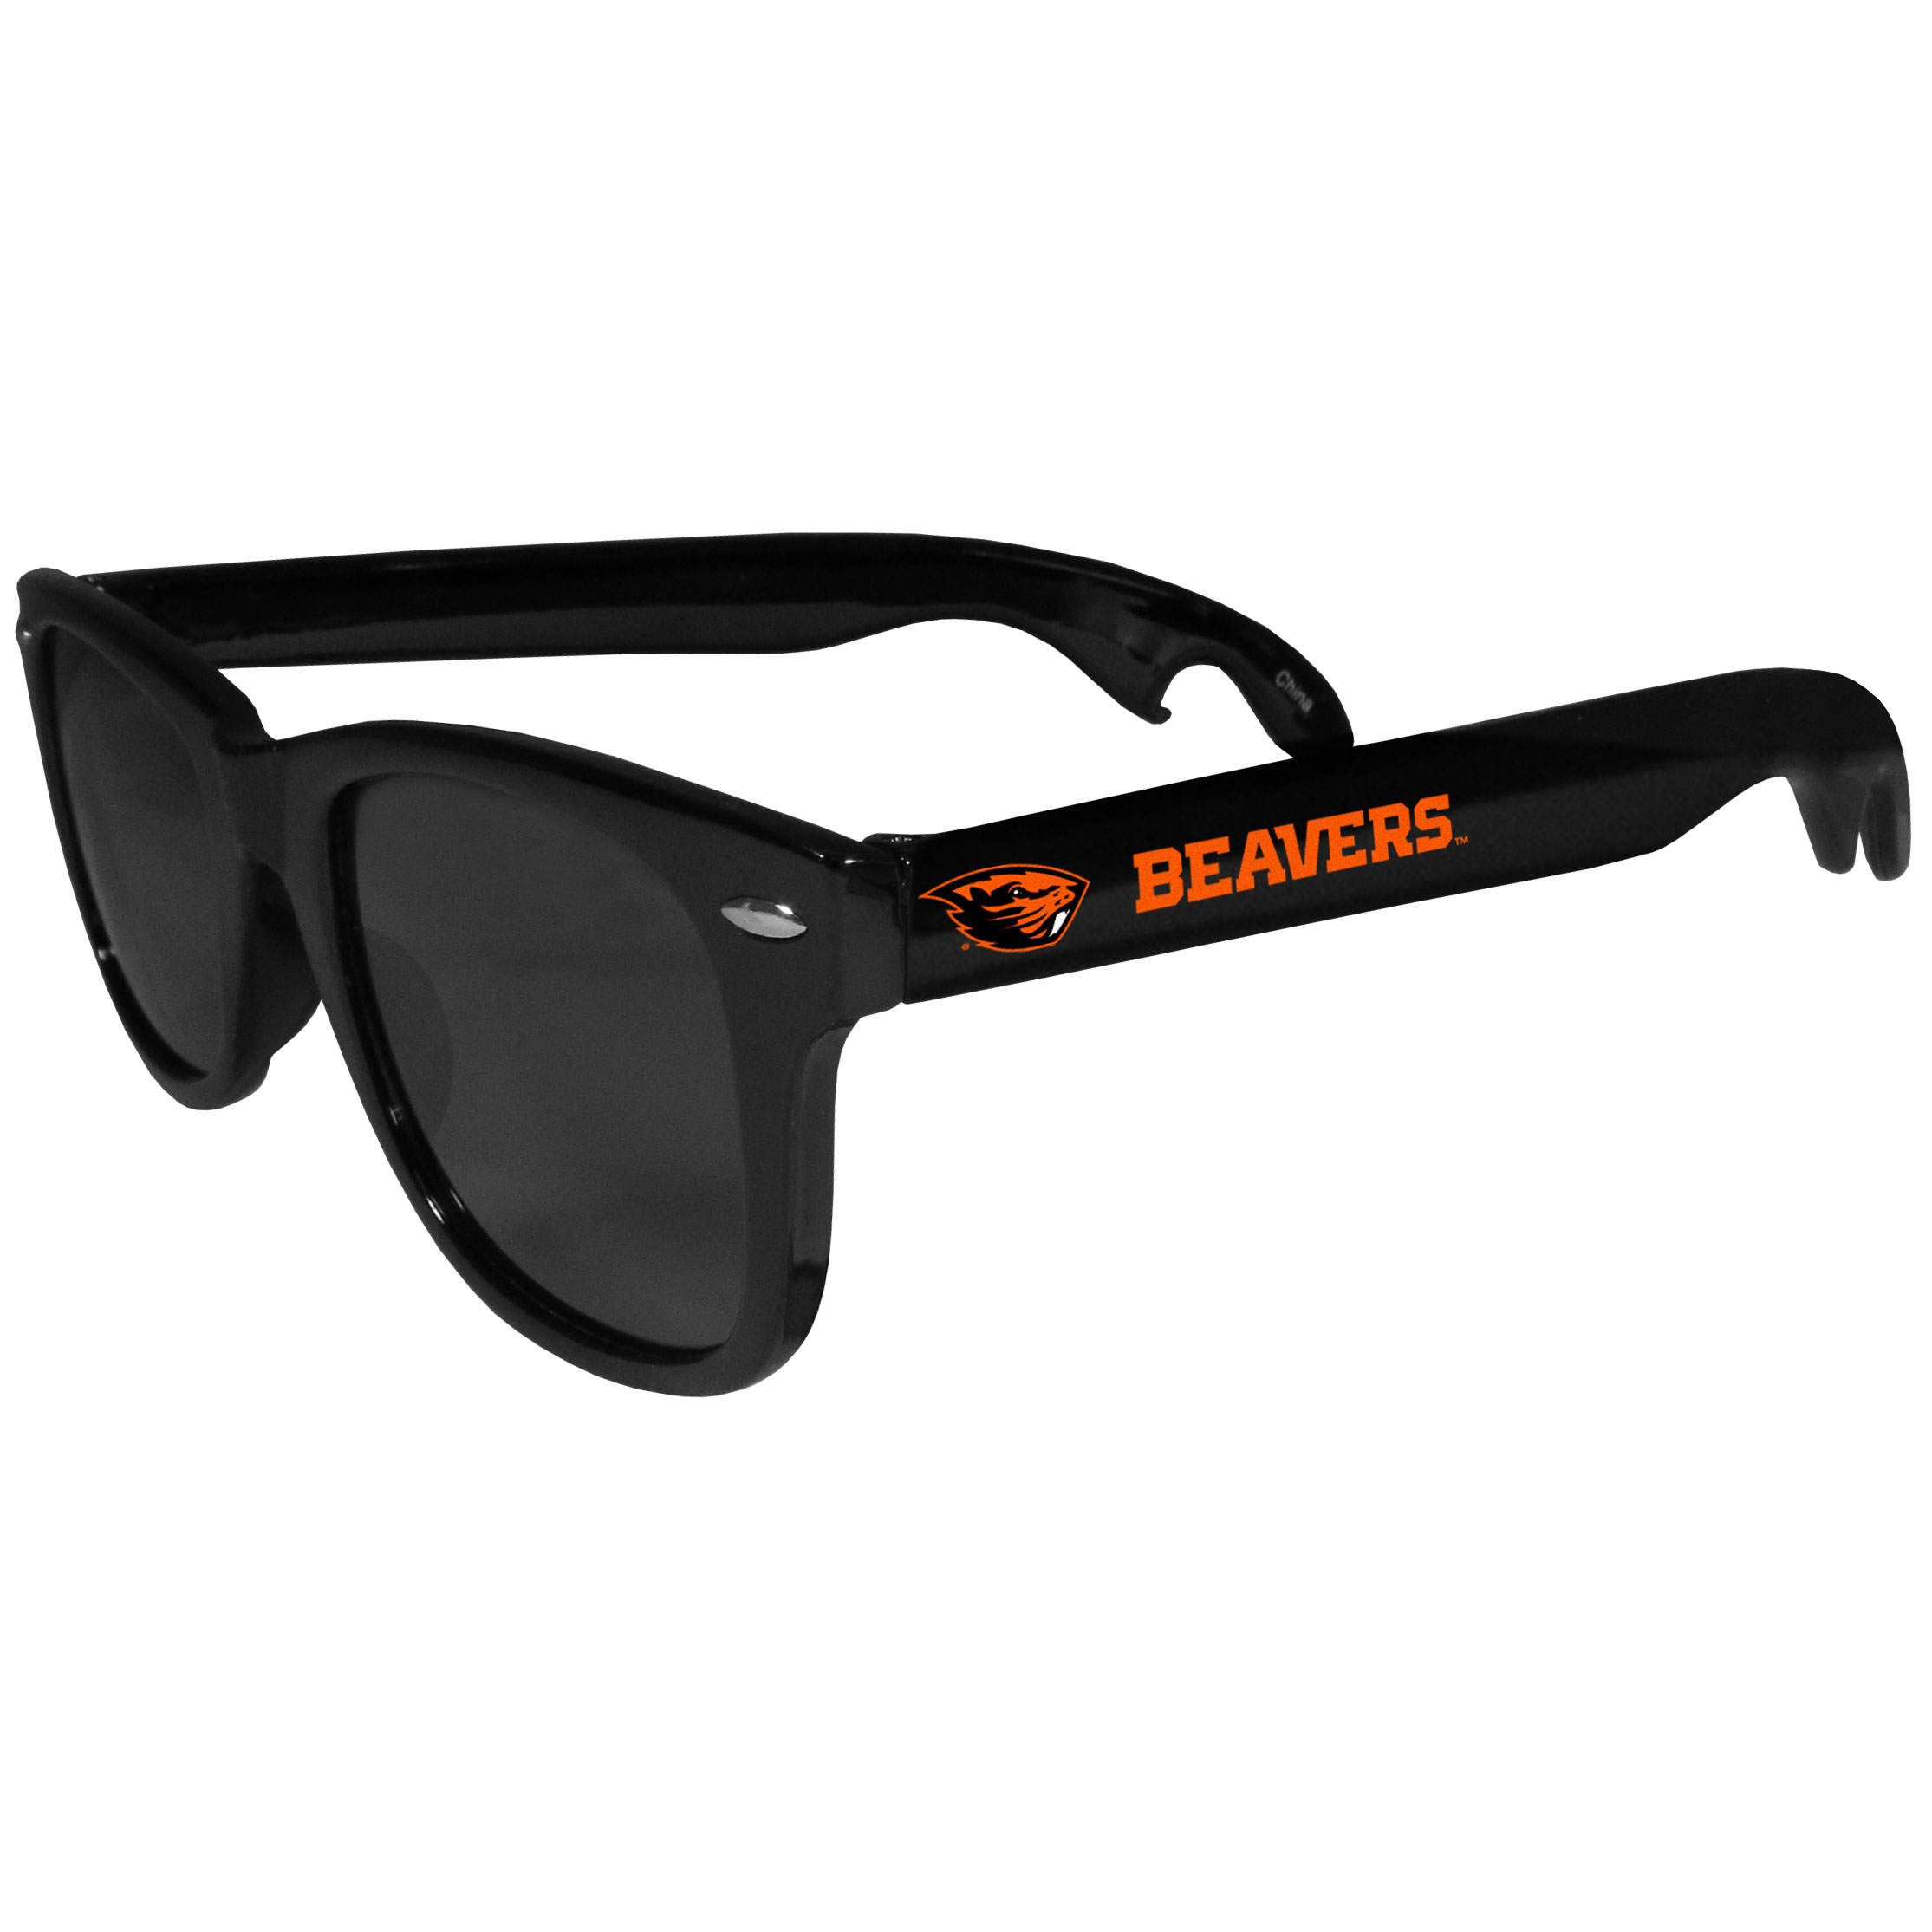 Oregon St. Beavers Beachfarer Bottle Opener Sunglasses - Seriously, these sunglasses open bottles! Keep the party going with these amazing Oregon St. Beavers bottle opener sunglasses. The stylish retro frames feature team designs on the arms and functional bottle openers on the end of the arms. Whether you are at the beach or having a backyard BBQ on game day, these shades will keep your eyes protected with 100% UVA/UVB protection and keep you hydrated with the handy bottle opener arms.